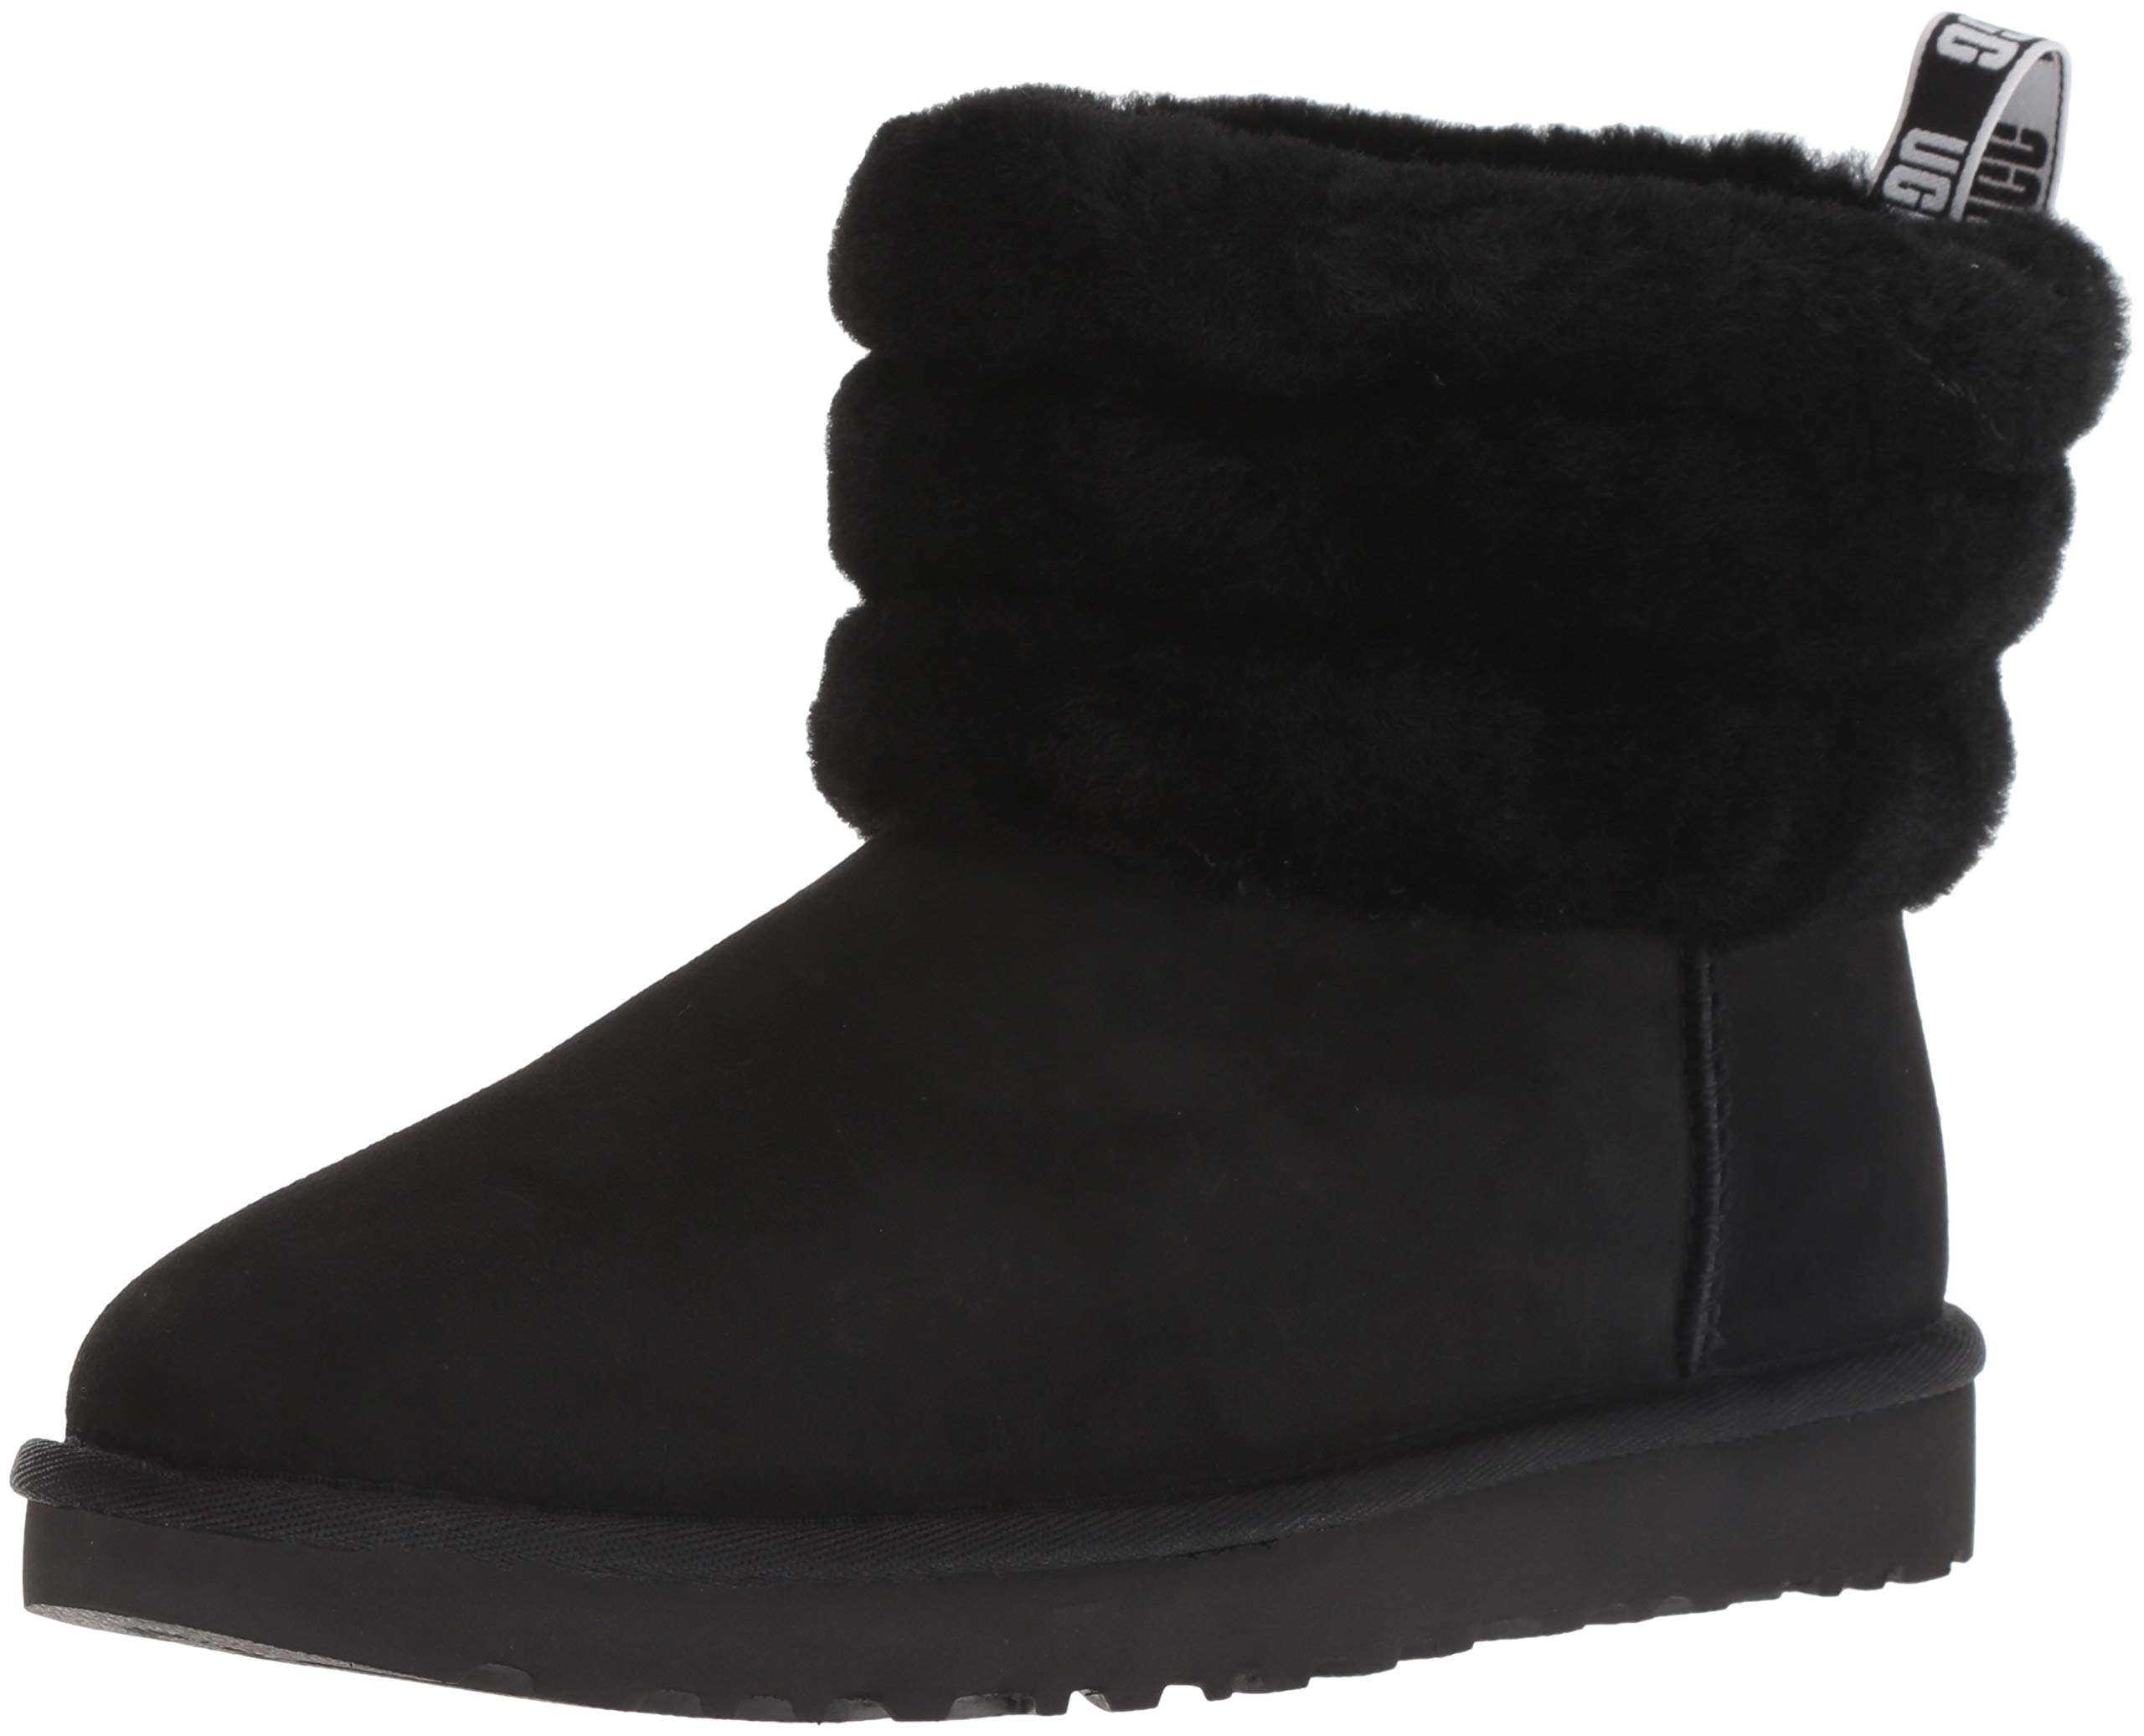 UGG Women's W Fluff Mini Quilted Fashion Boot, black, 9 M US by UGG